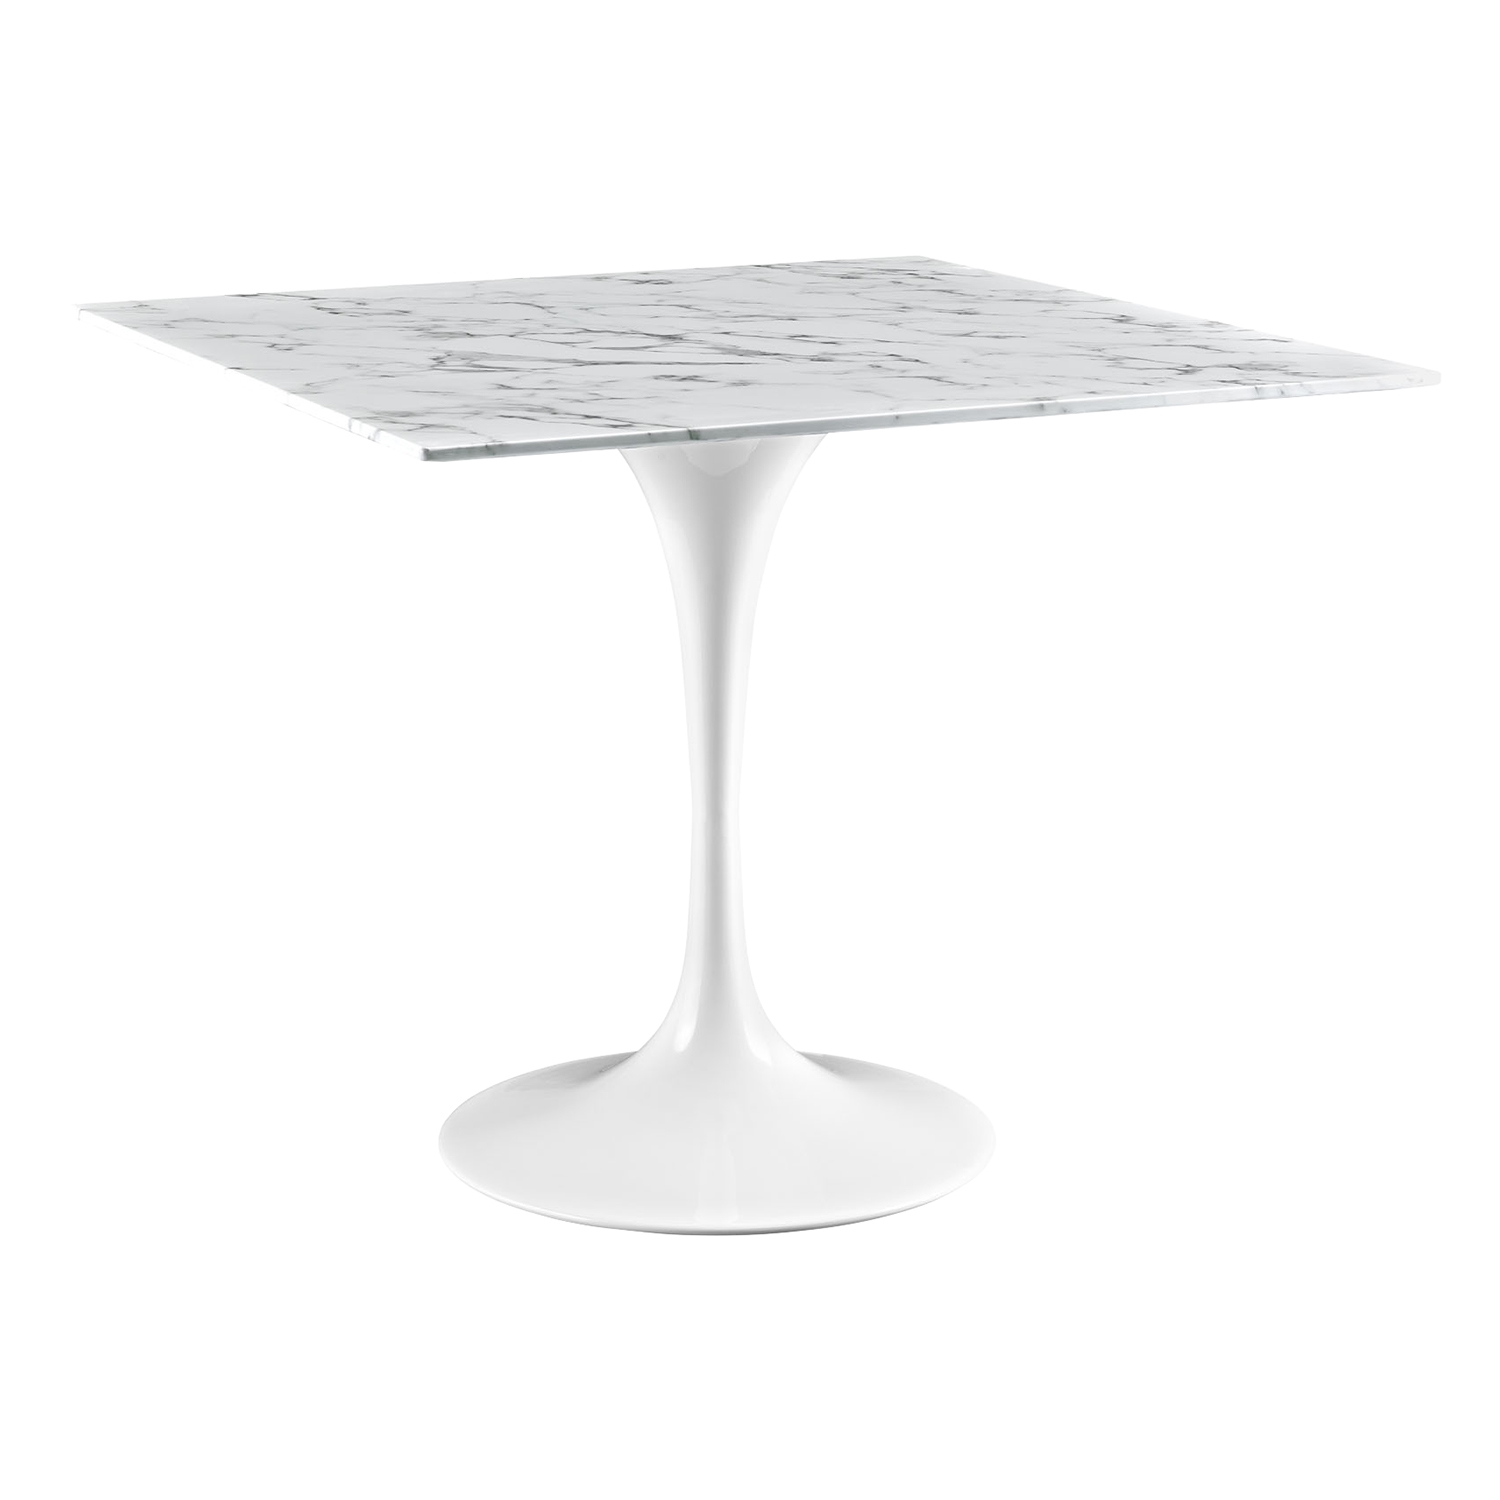 "Lippa 36"" Marble Dining Table - White - EEI-1636-WHI"